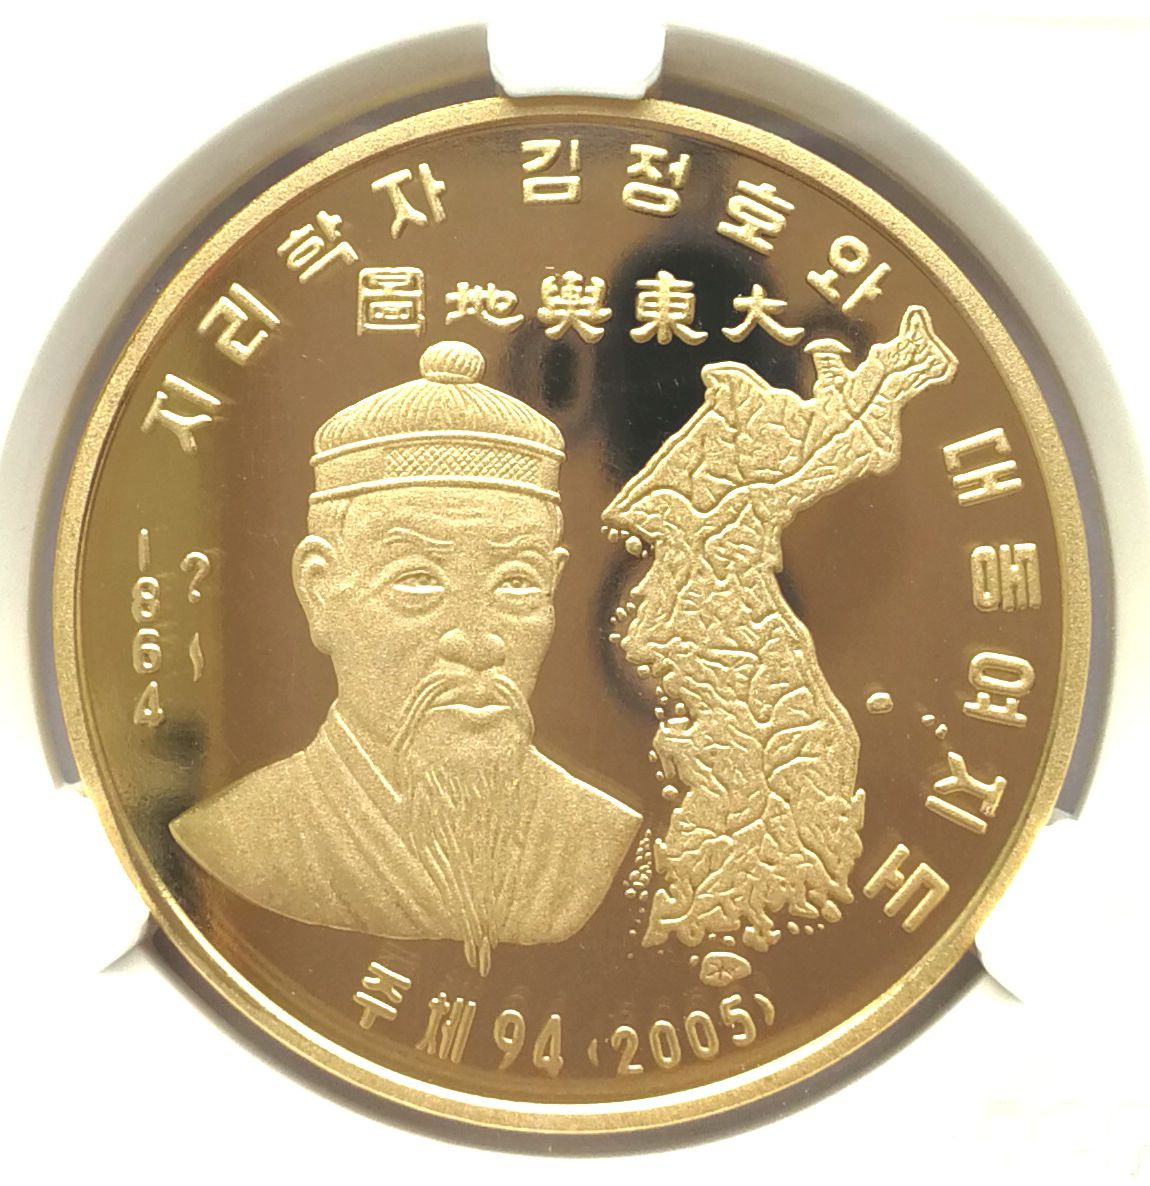 "L3375, ""Kim Jeong-ho, Ancient Korean Map"" Proof Bronze Coin 2005, ACG Grade"